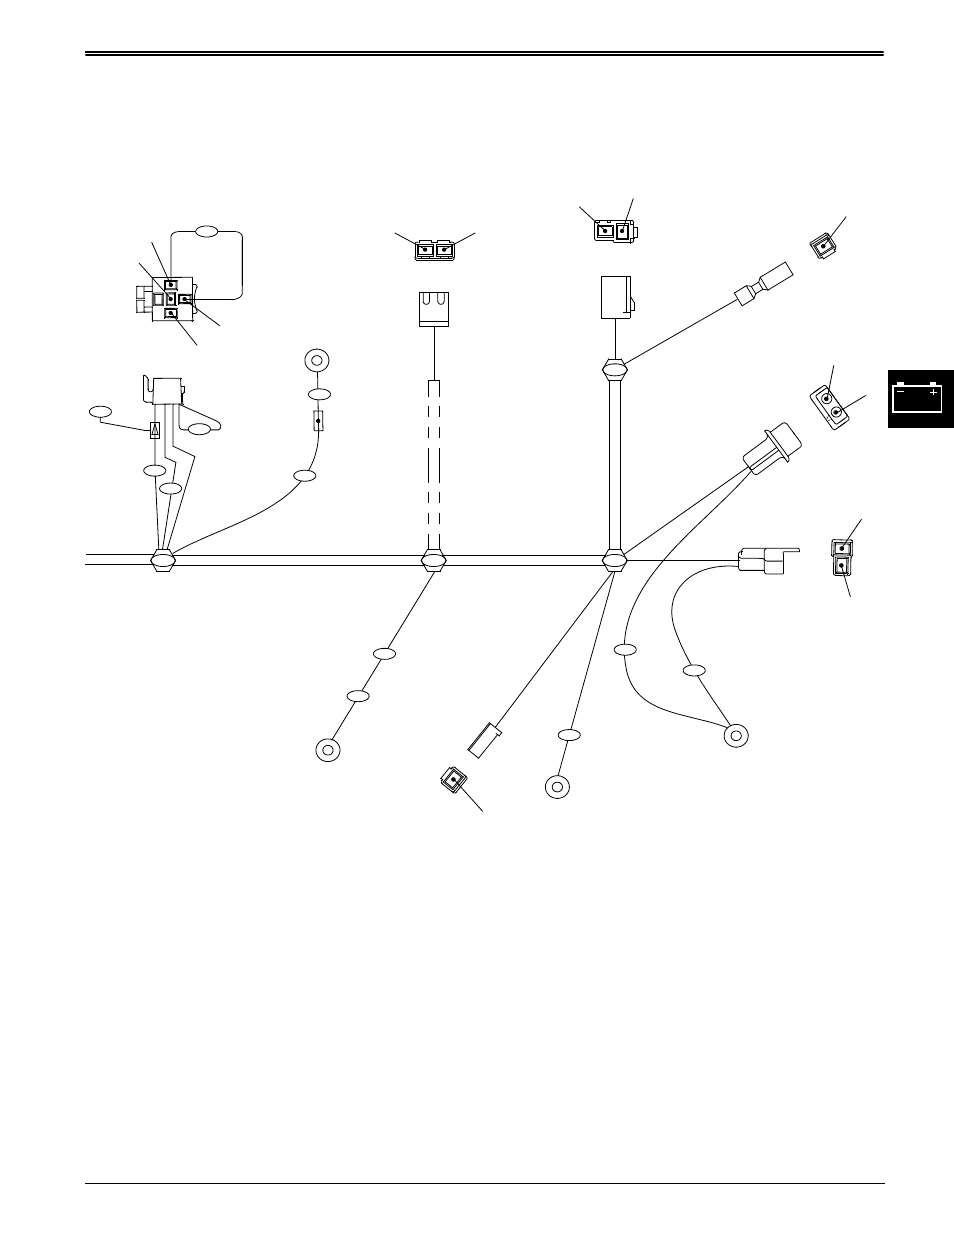 hight resolution of wiring harness diagrams electrical john deere stx38 user manual page 97 314